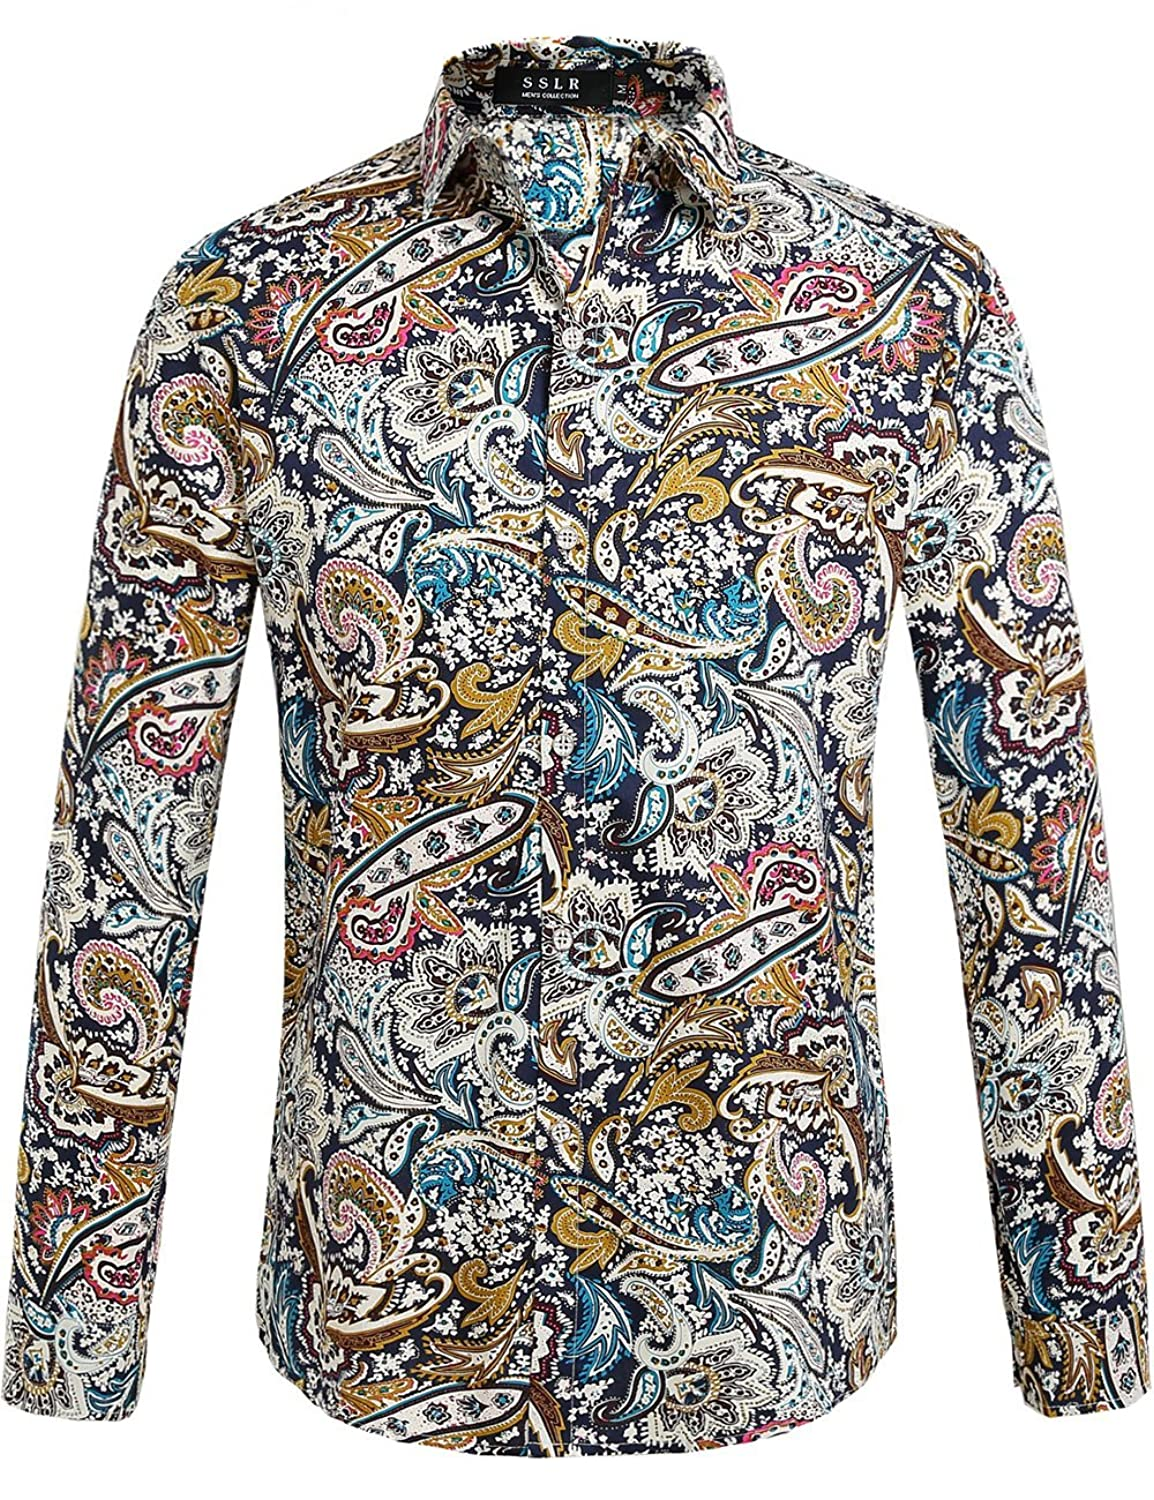 Retro Clothing for Men | Vintage Men's Fashion SSLR Mens Paisley Cotton Long Sleeve Casual Button Down Shirt $26.00 AT vintagedancer.com